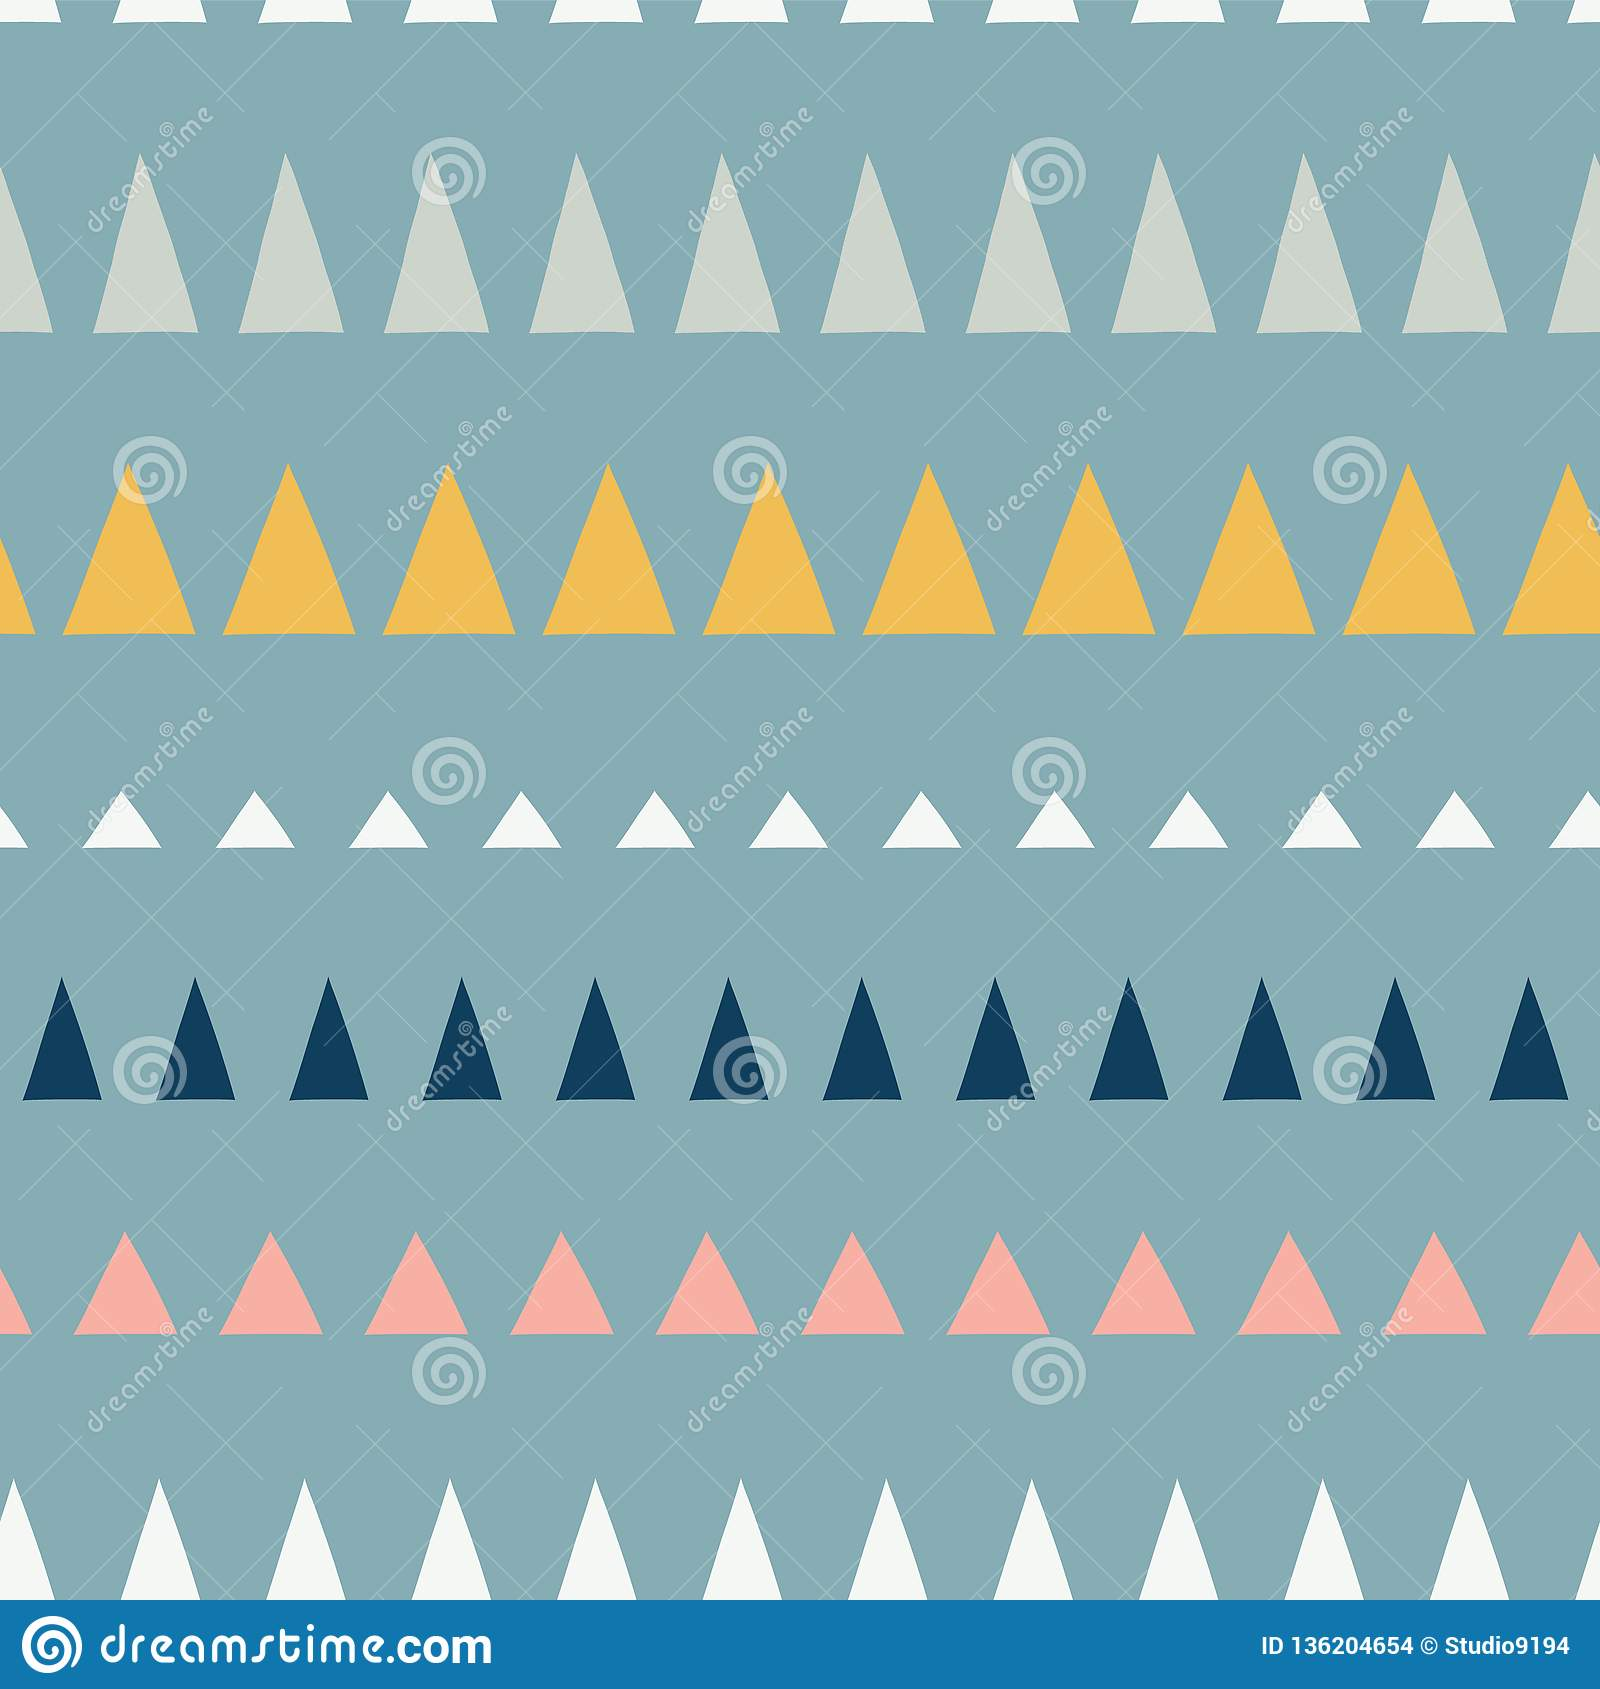 Triangles in a row seamless vector pattern. Abstract background hand drawn lined up triangles. Geometric design in teal, blue,